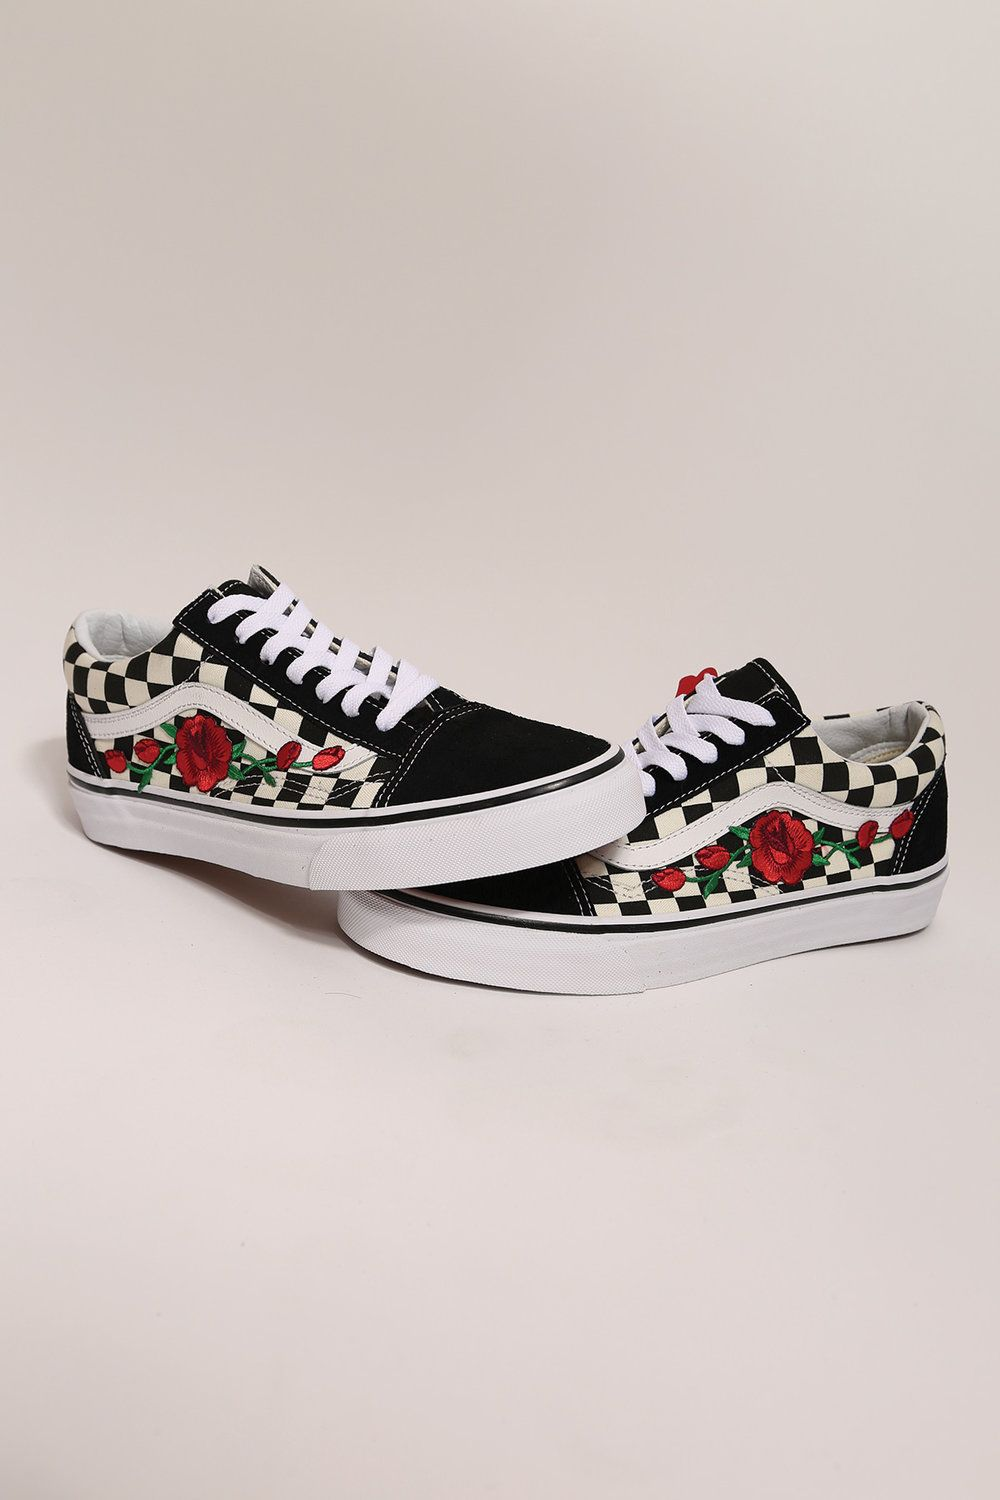 Custom rose vans checkered old skool low top  93be94aa1